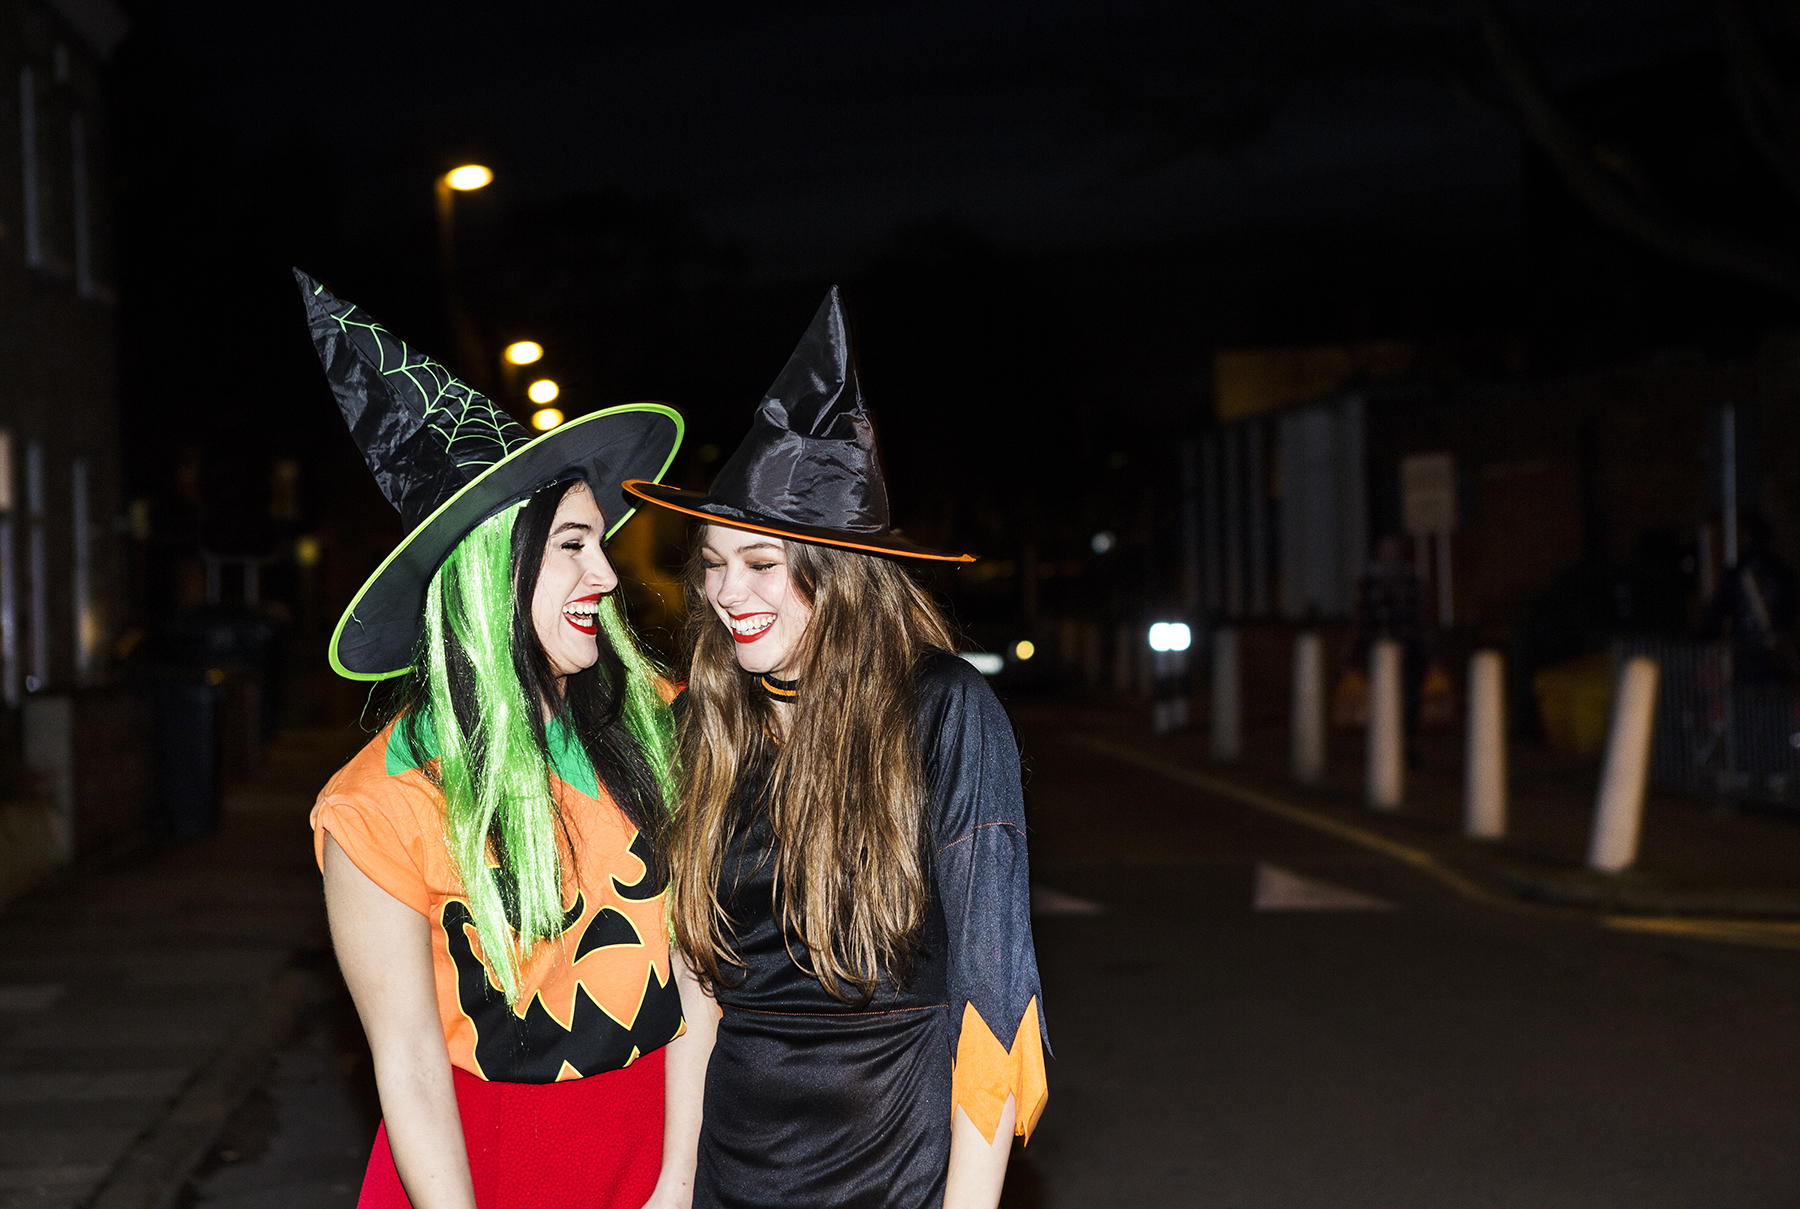 2 young women dressed as witches, laughing